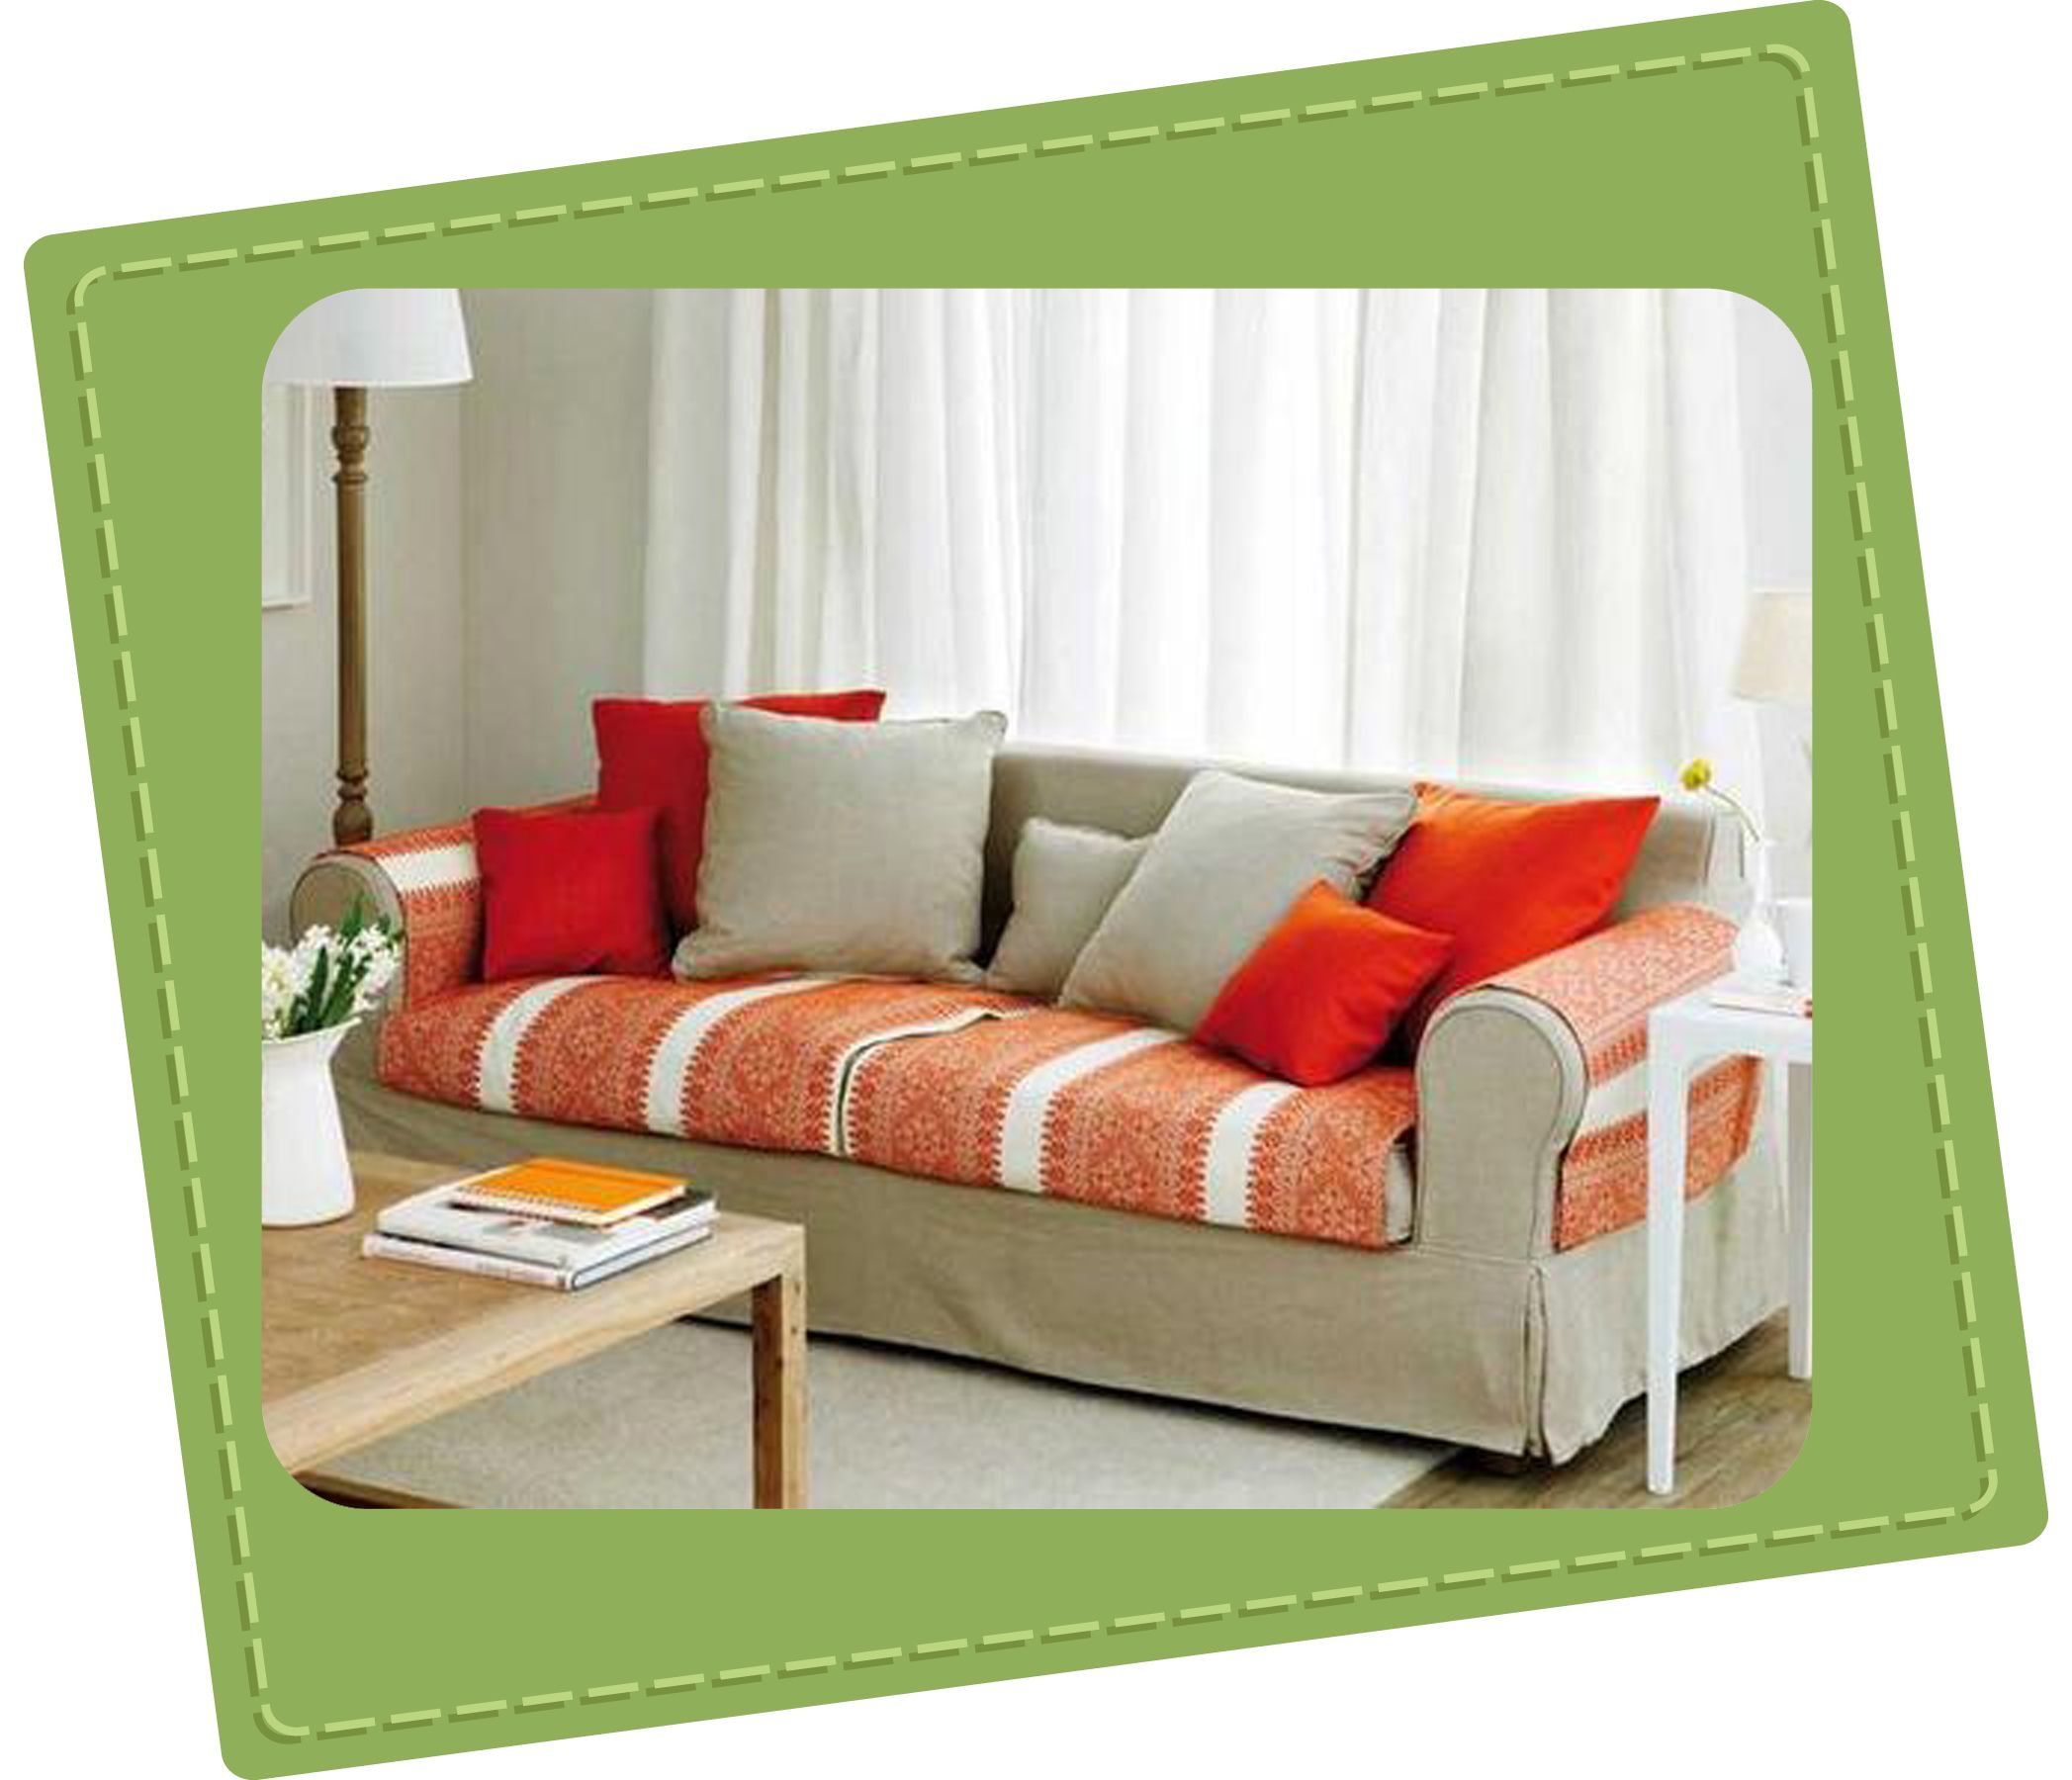 Como hacer una funda de sofa chaise longue cheap - Fundas de sofa con cheslong ...